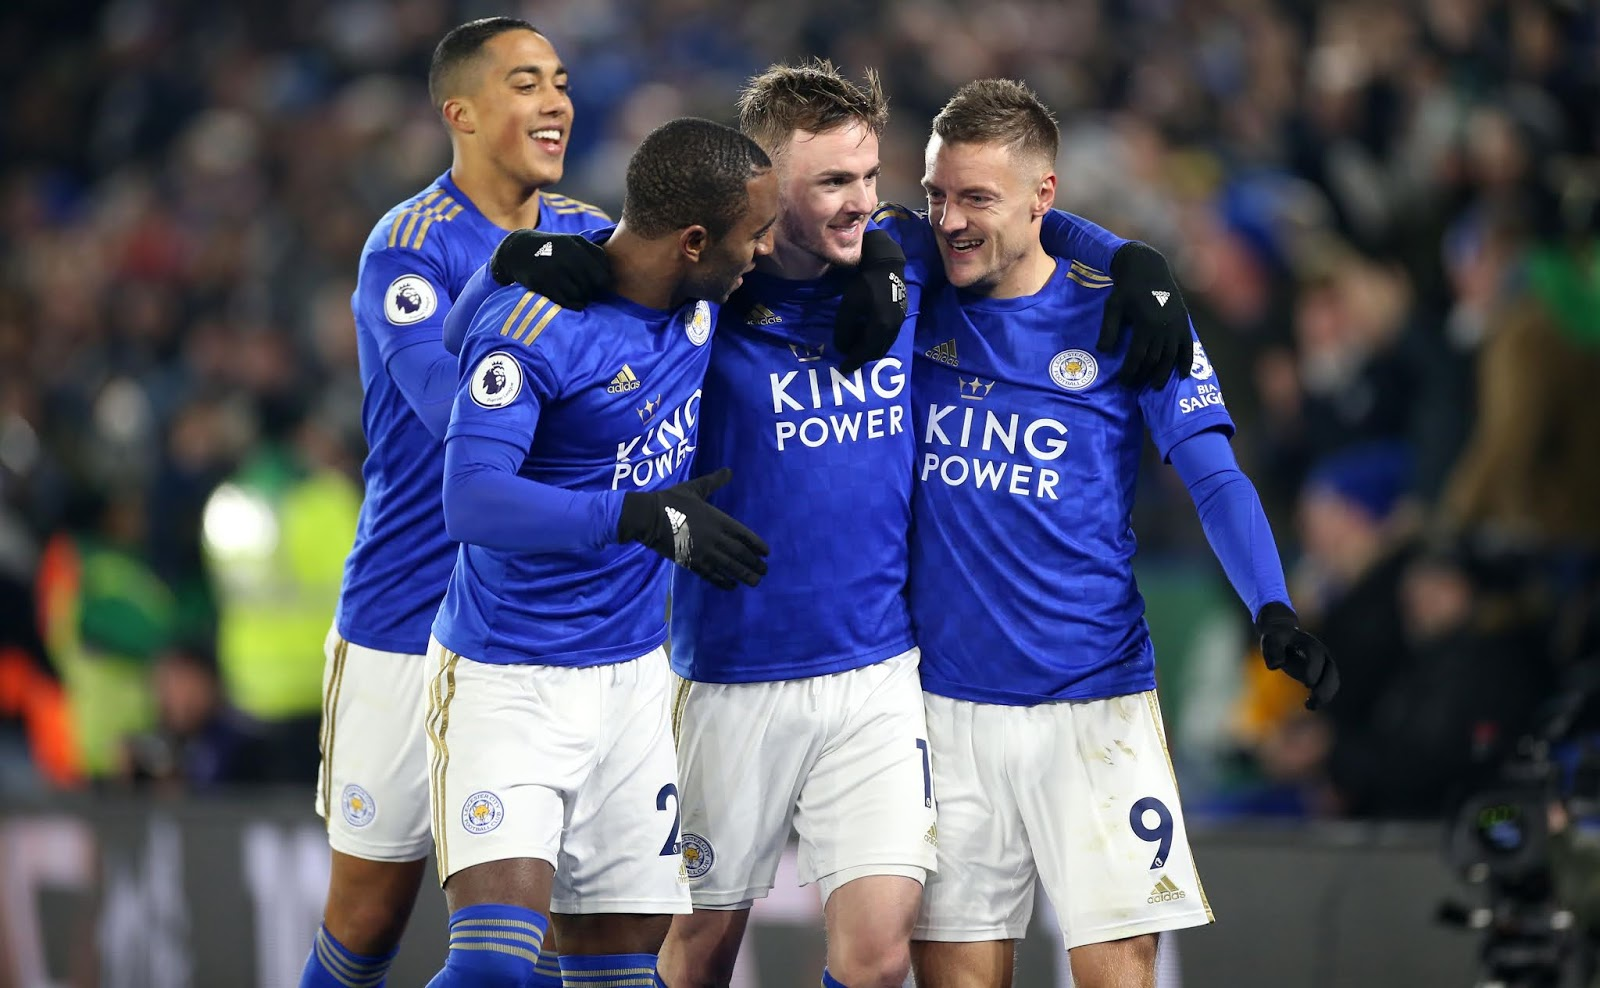 The Foxes' Youri Tielemans, Ricardo Pereira, James Maddison and Jamie Vardy